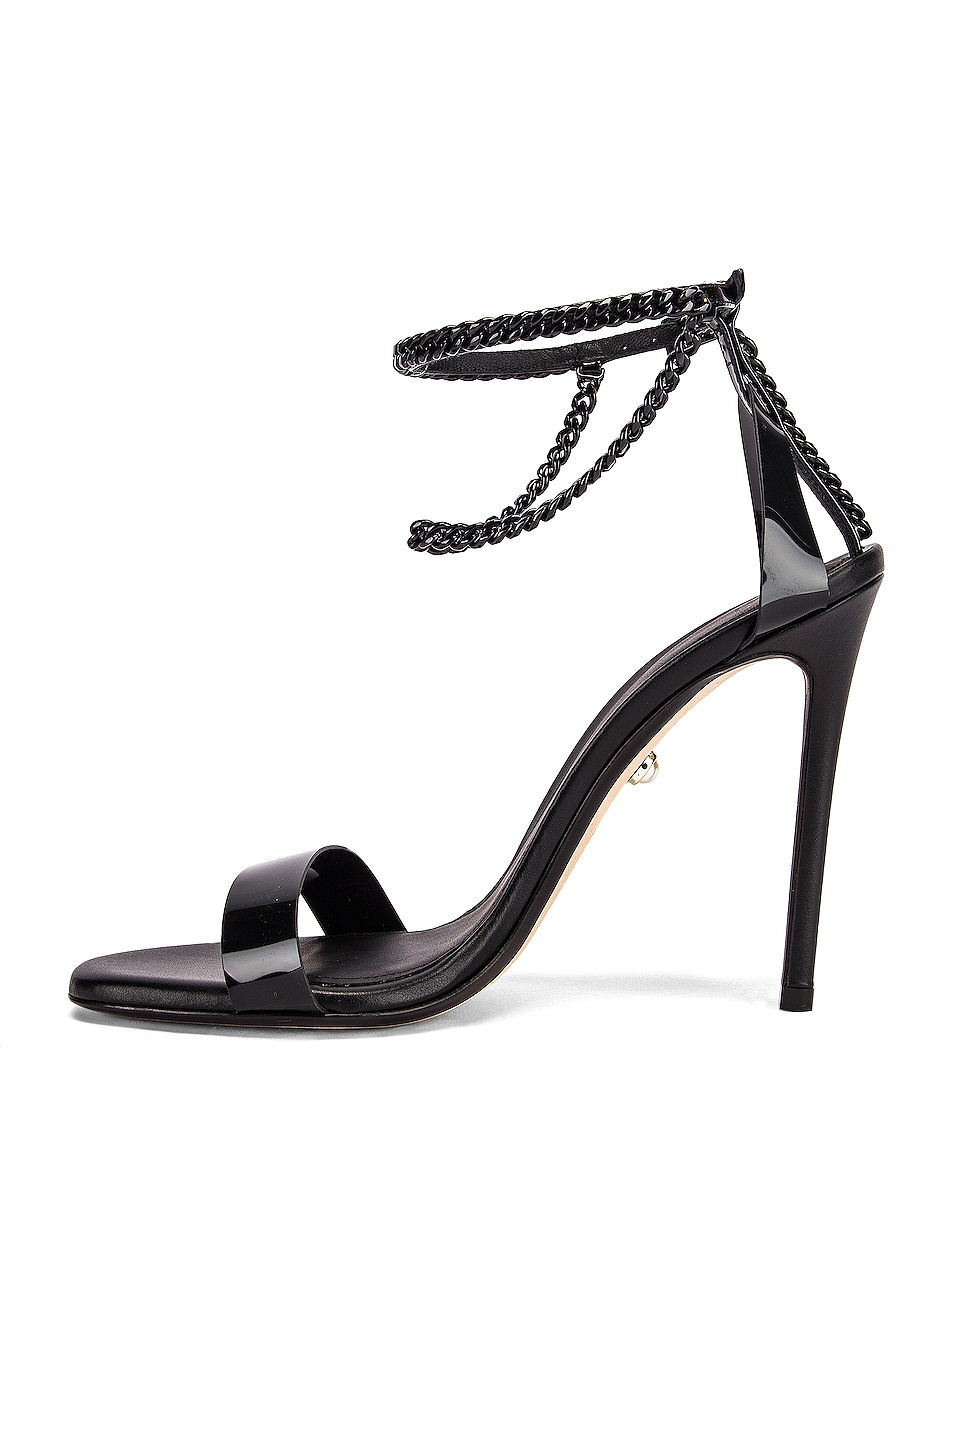 Image 5 of ALEVI Milano Alevi Valentina Heel in Campari Black